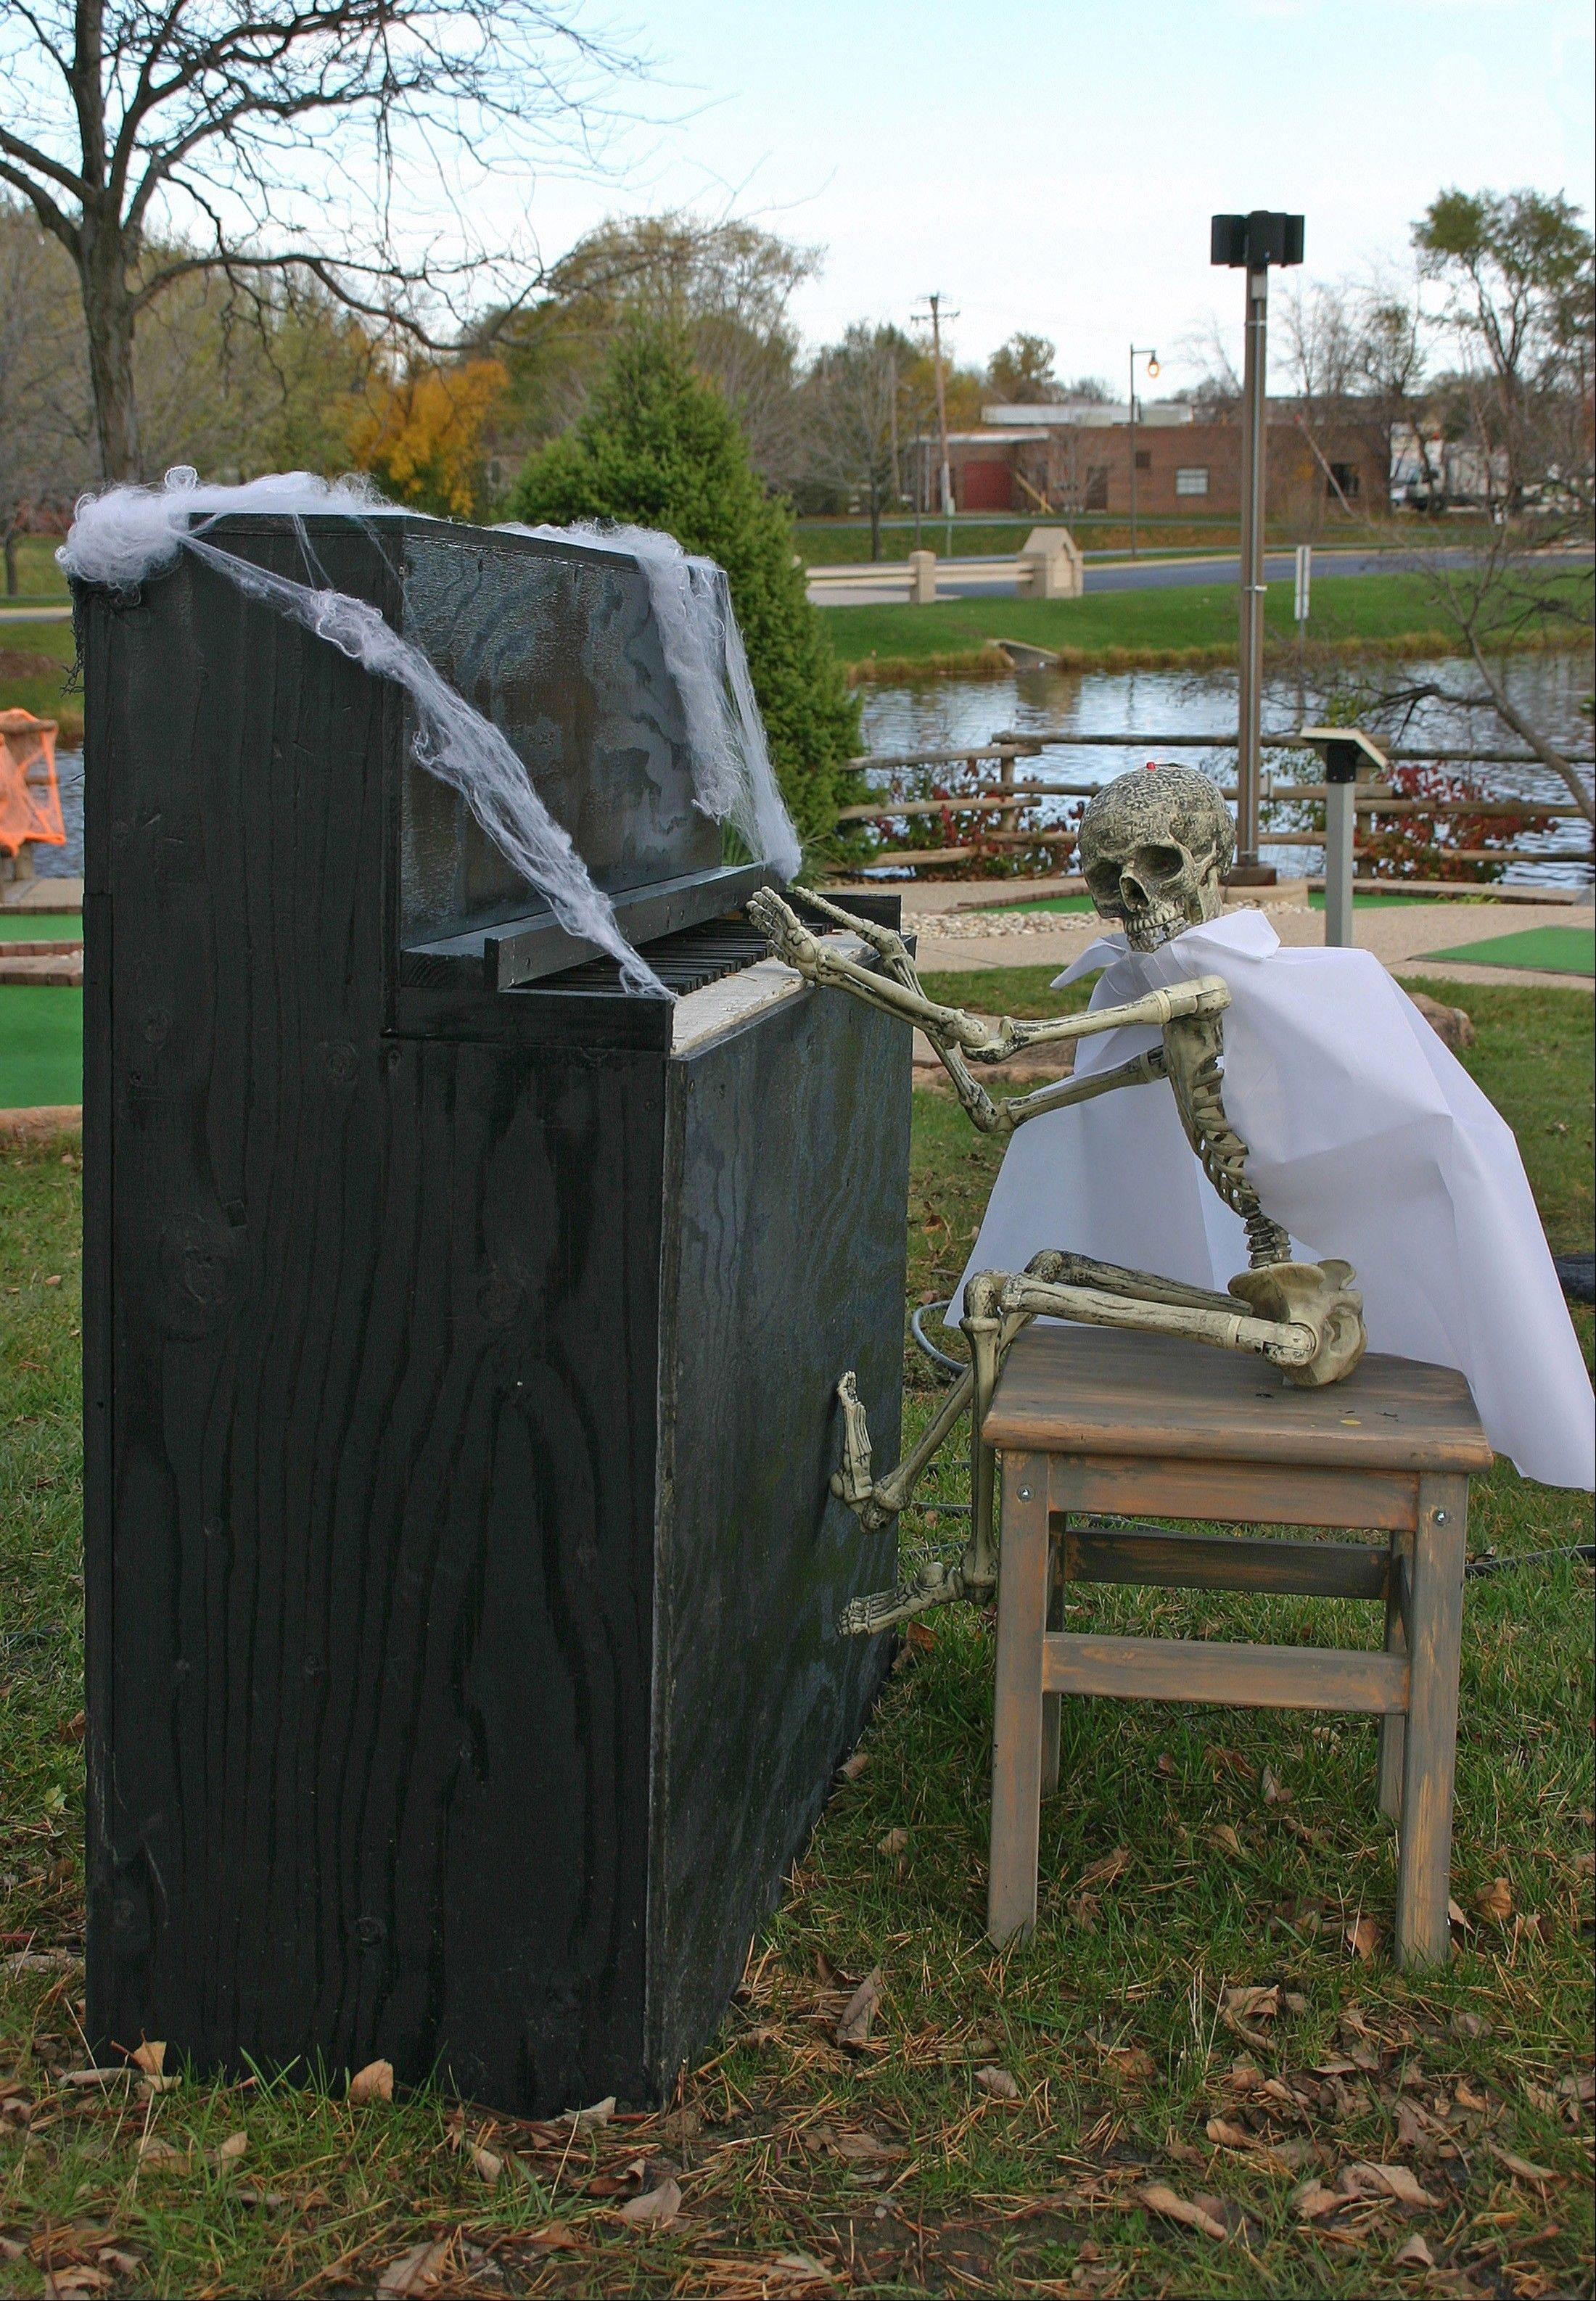 Frank Steinway tickles the ivories at the 2012 Haunted Hole-O-Ween. Beware, danger lurks around every hole.